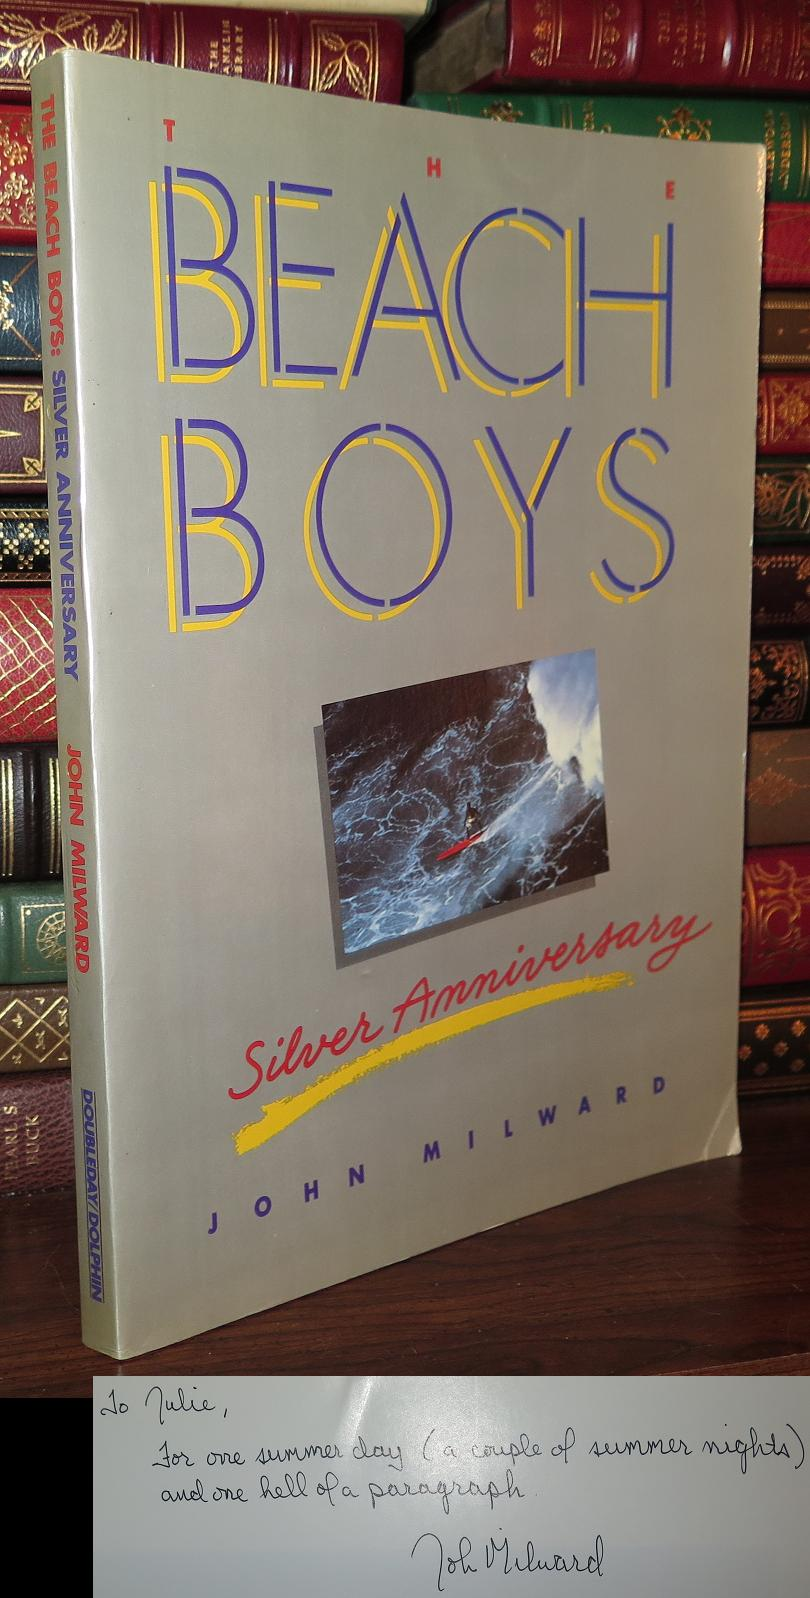 THE BEACH BOYS SILVER ANNIVERSARY Signed 1st Milward, John Softcover